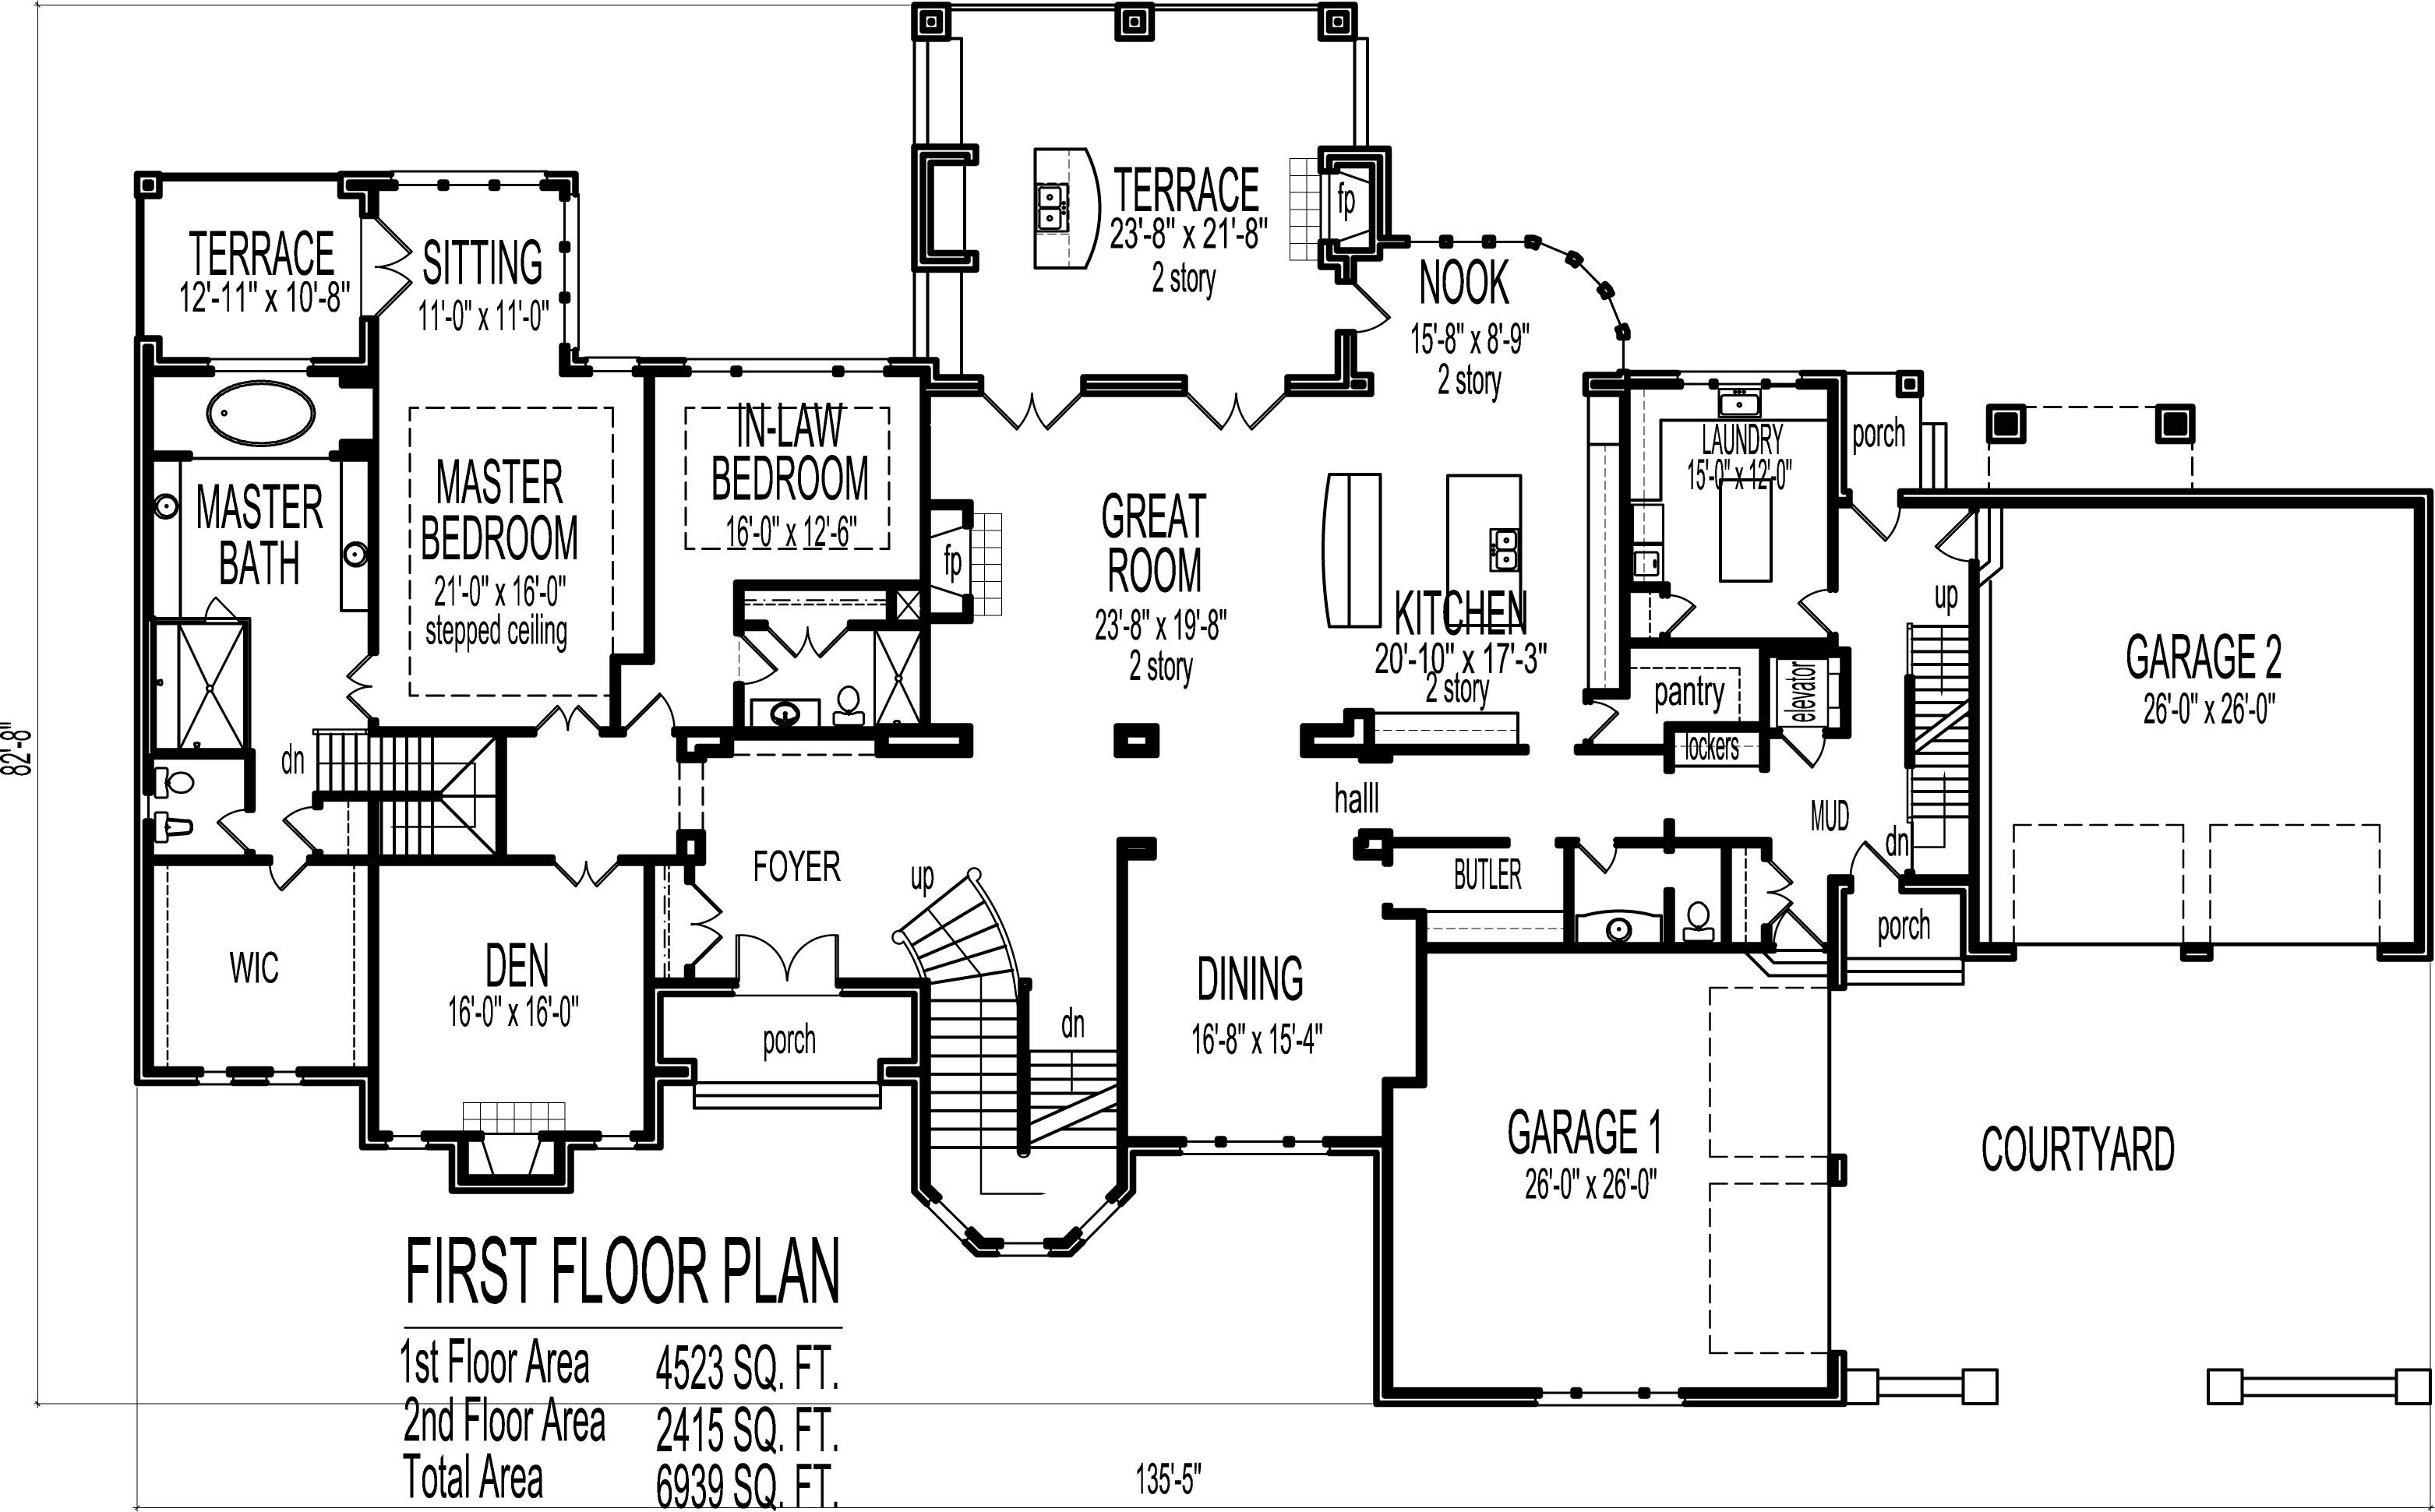 6 Bedroom House Plans